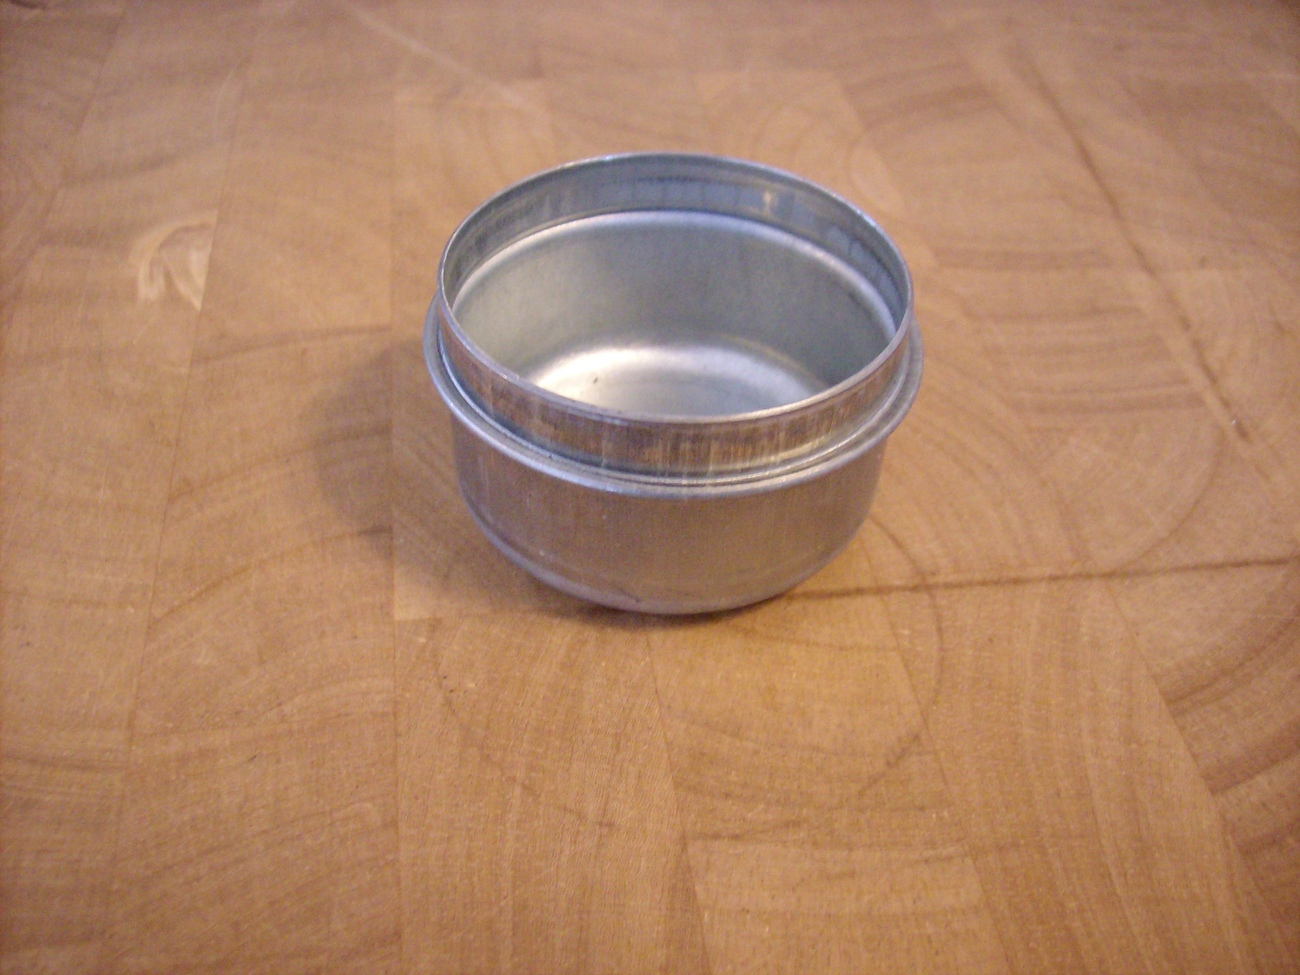 Scag SMT, SMTC, SMWC and SMZC lawn mower bearing grease cap 481559